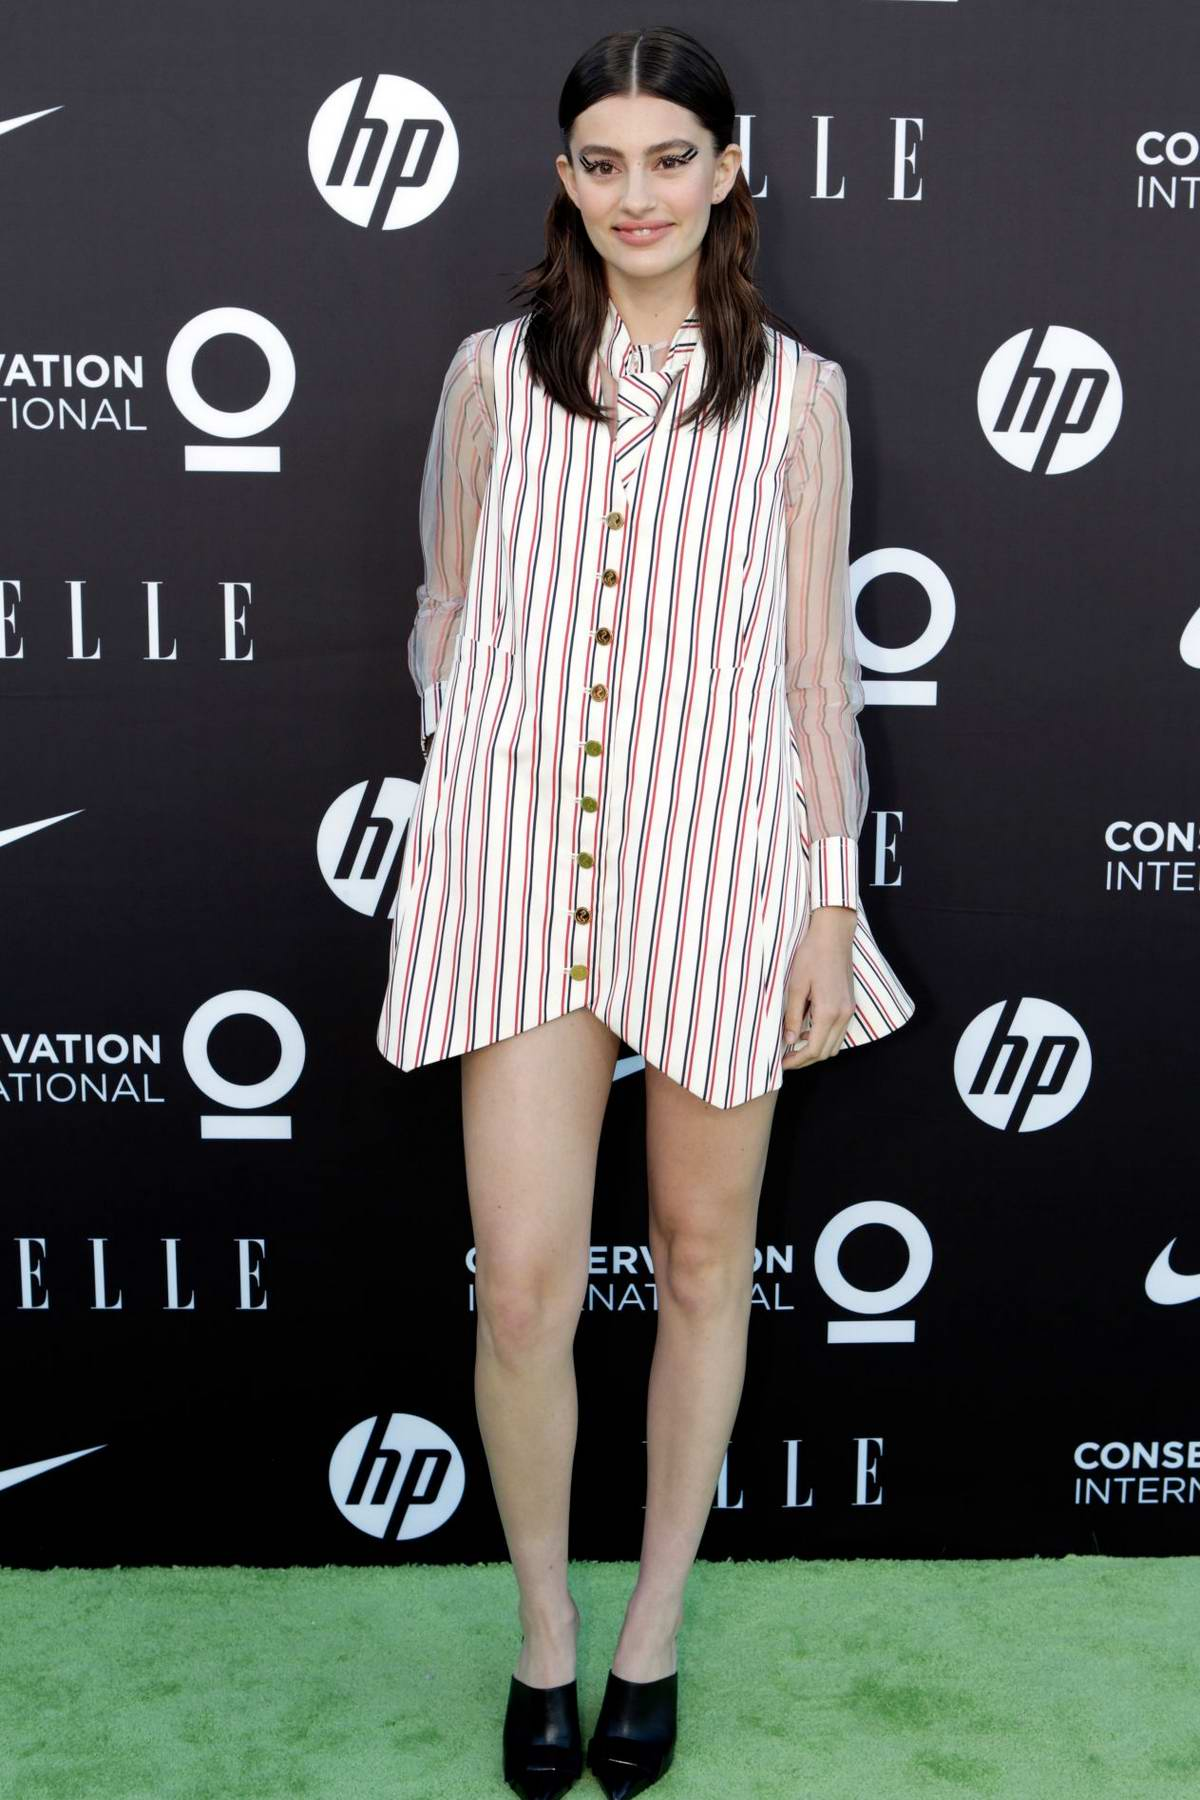 Diana Silvers attends the Women In Conservation event at Milk Studios in Hollywood, California